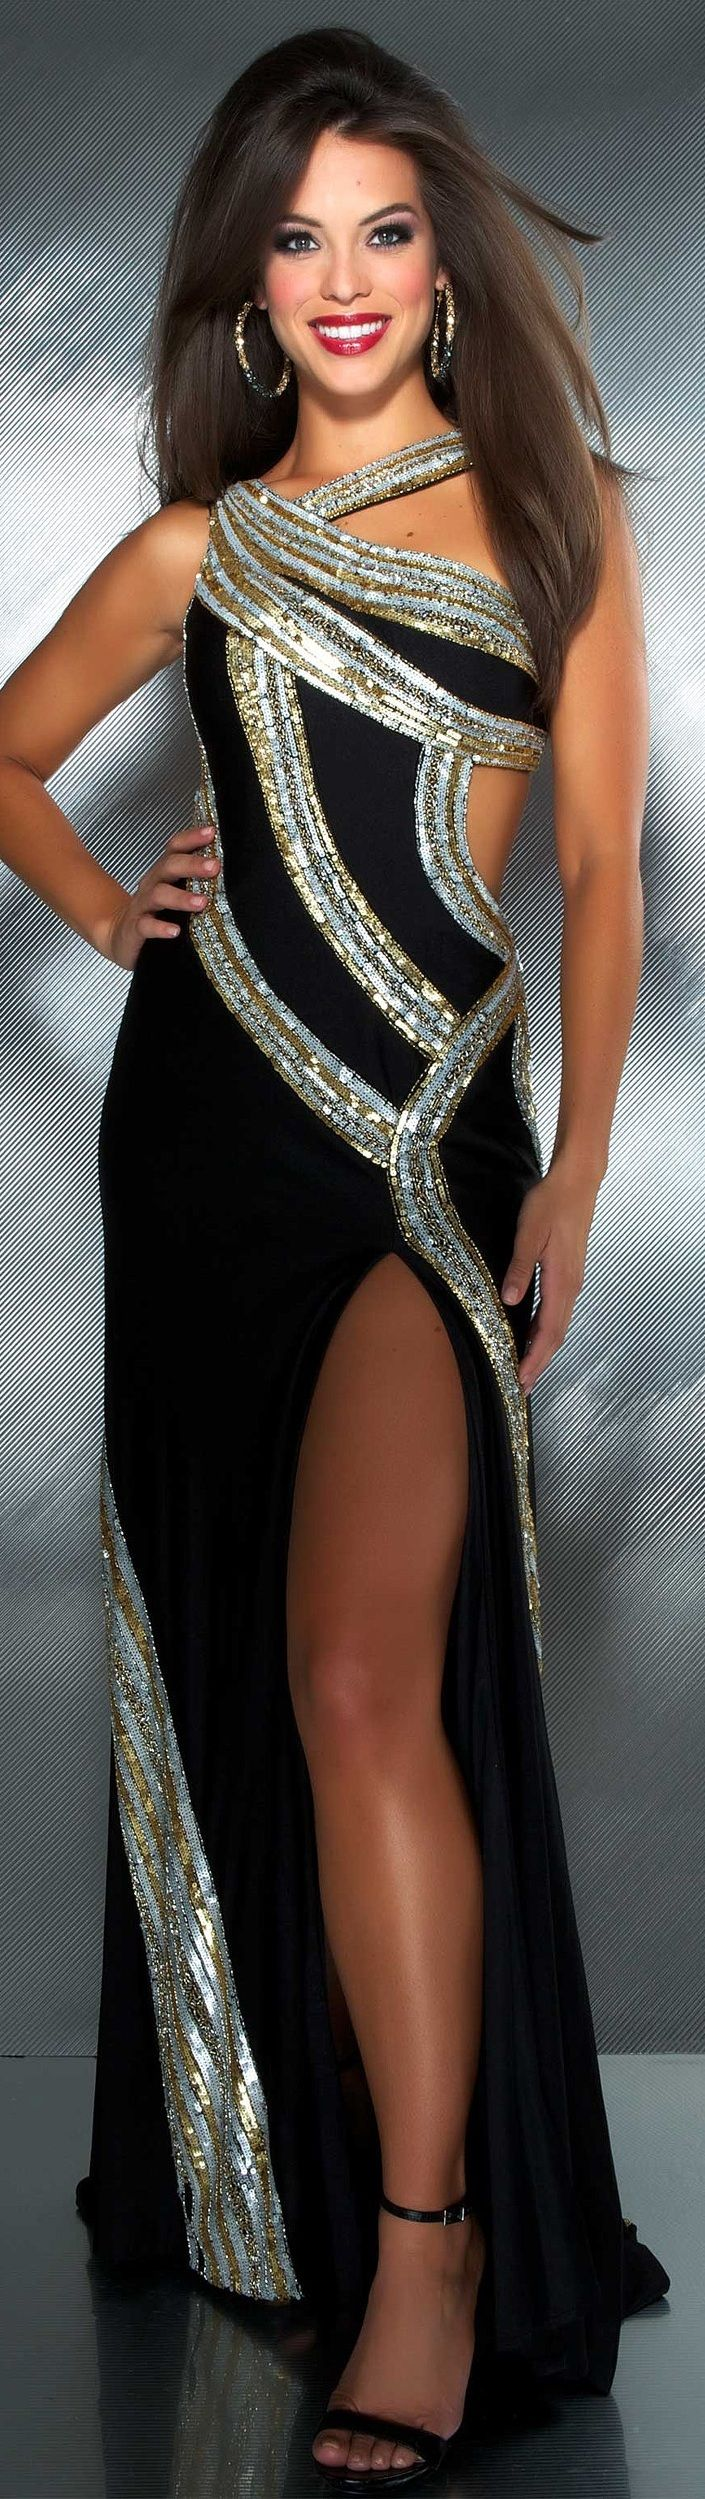 M✮✮ Please feel free to repin ♥ღ www.fashionandclothingblog.comac Duggal couture 2013 ~